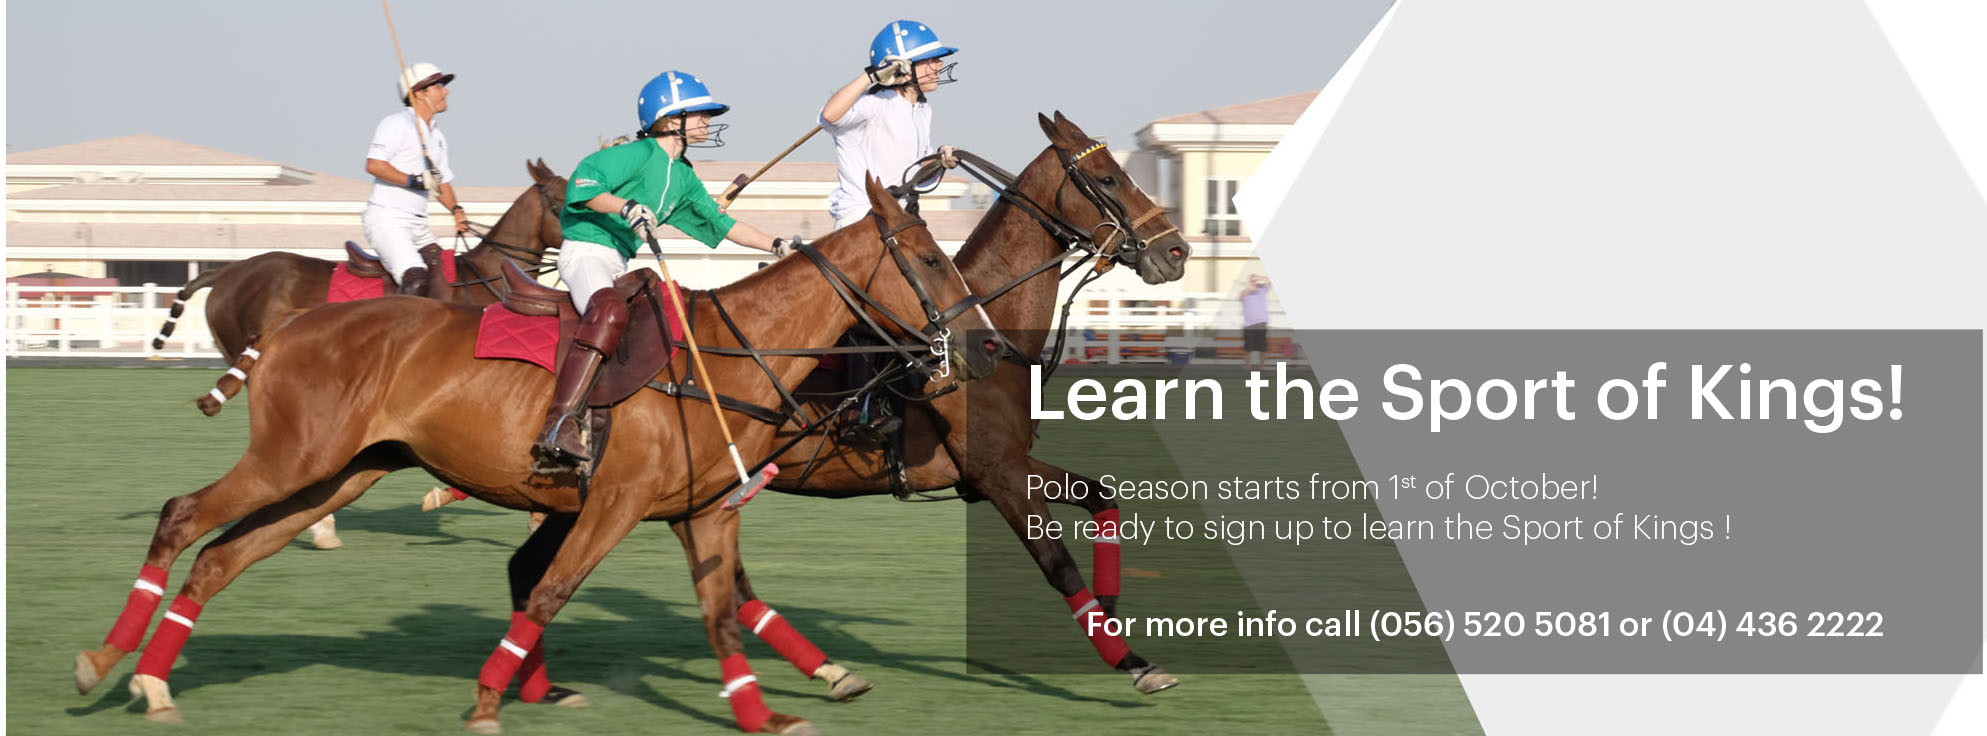 The St Regis Polo Brunch - Book now on 044355577